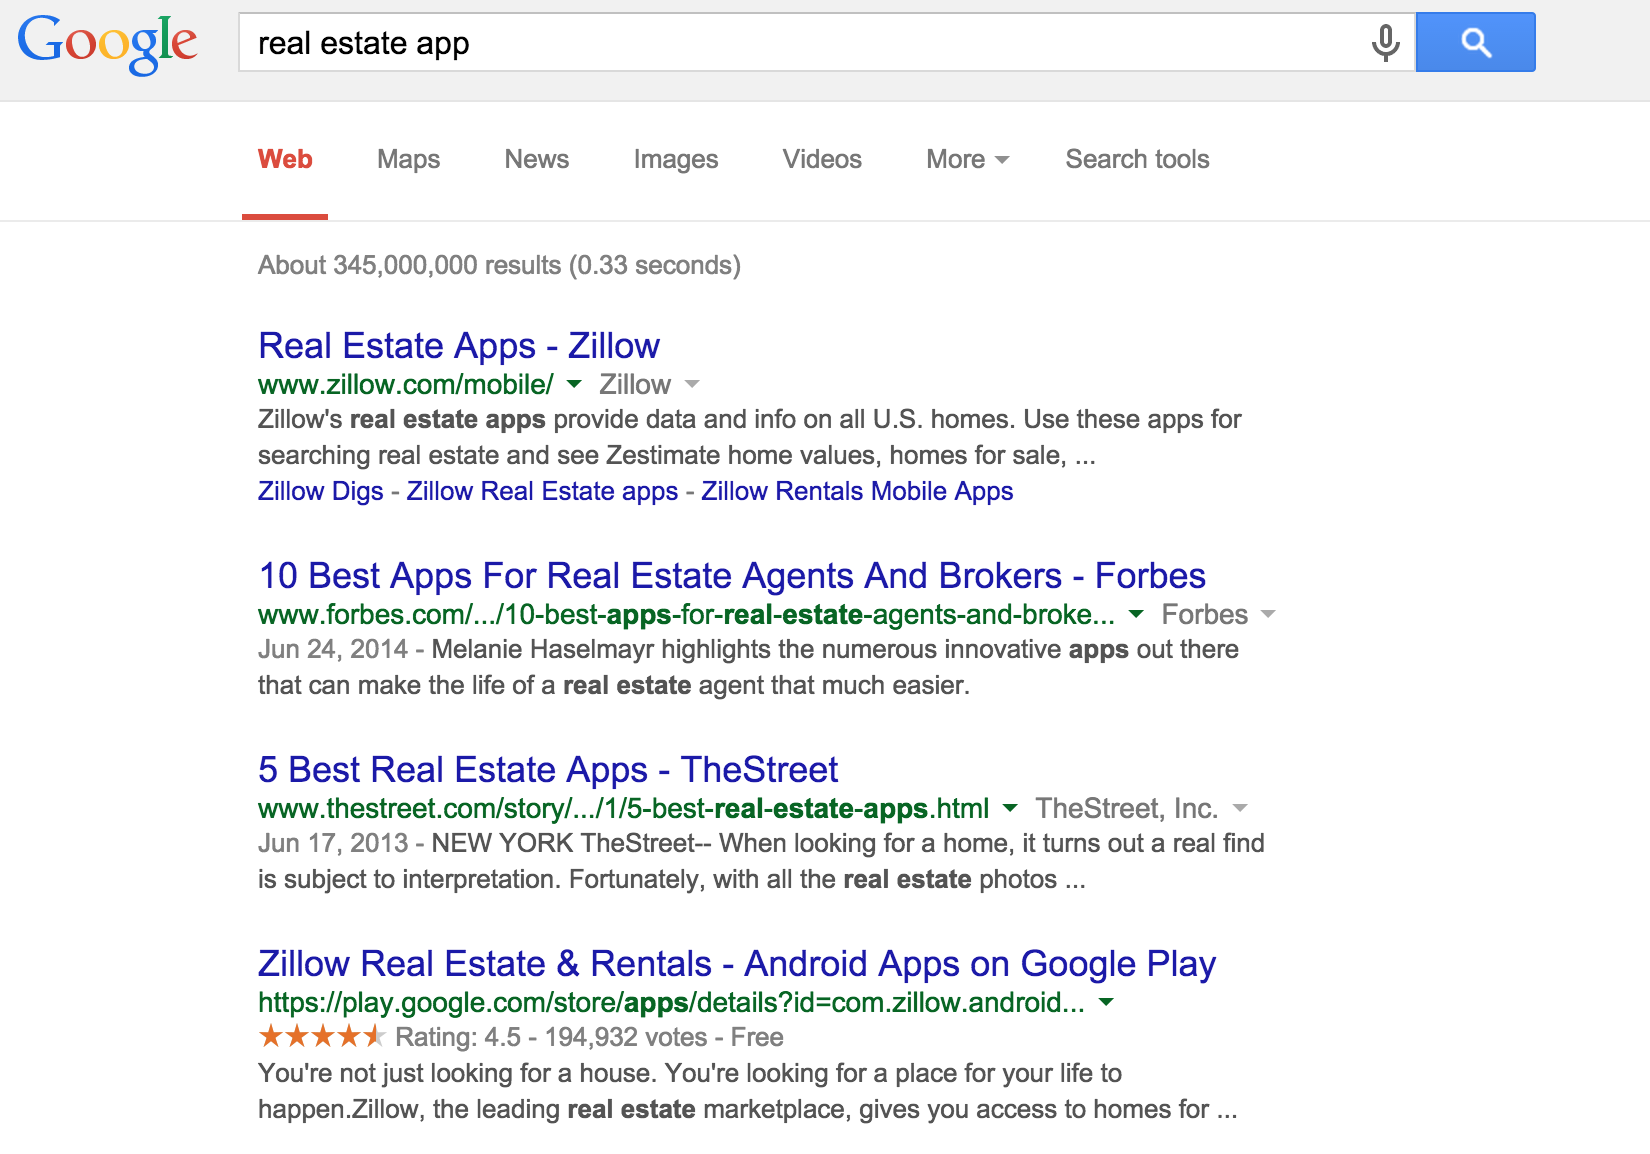 real-estate-app-search